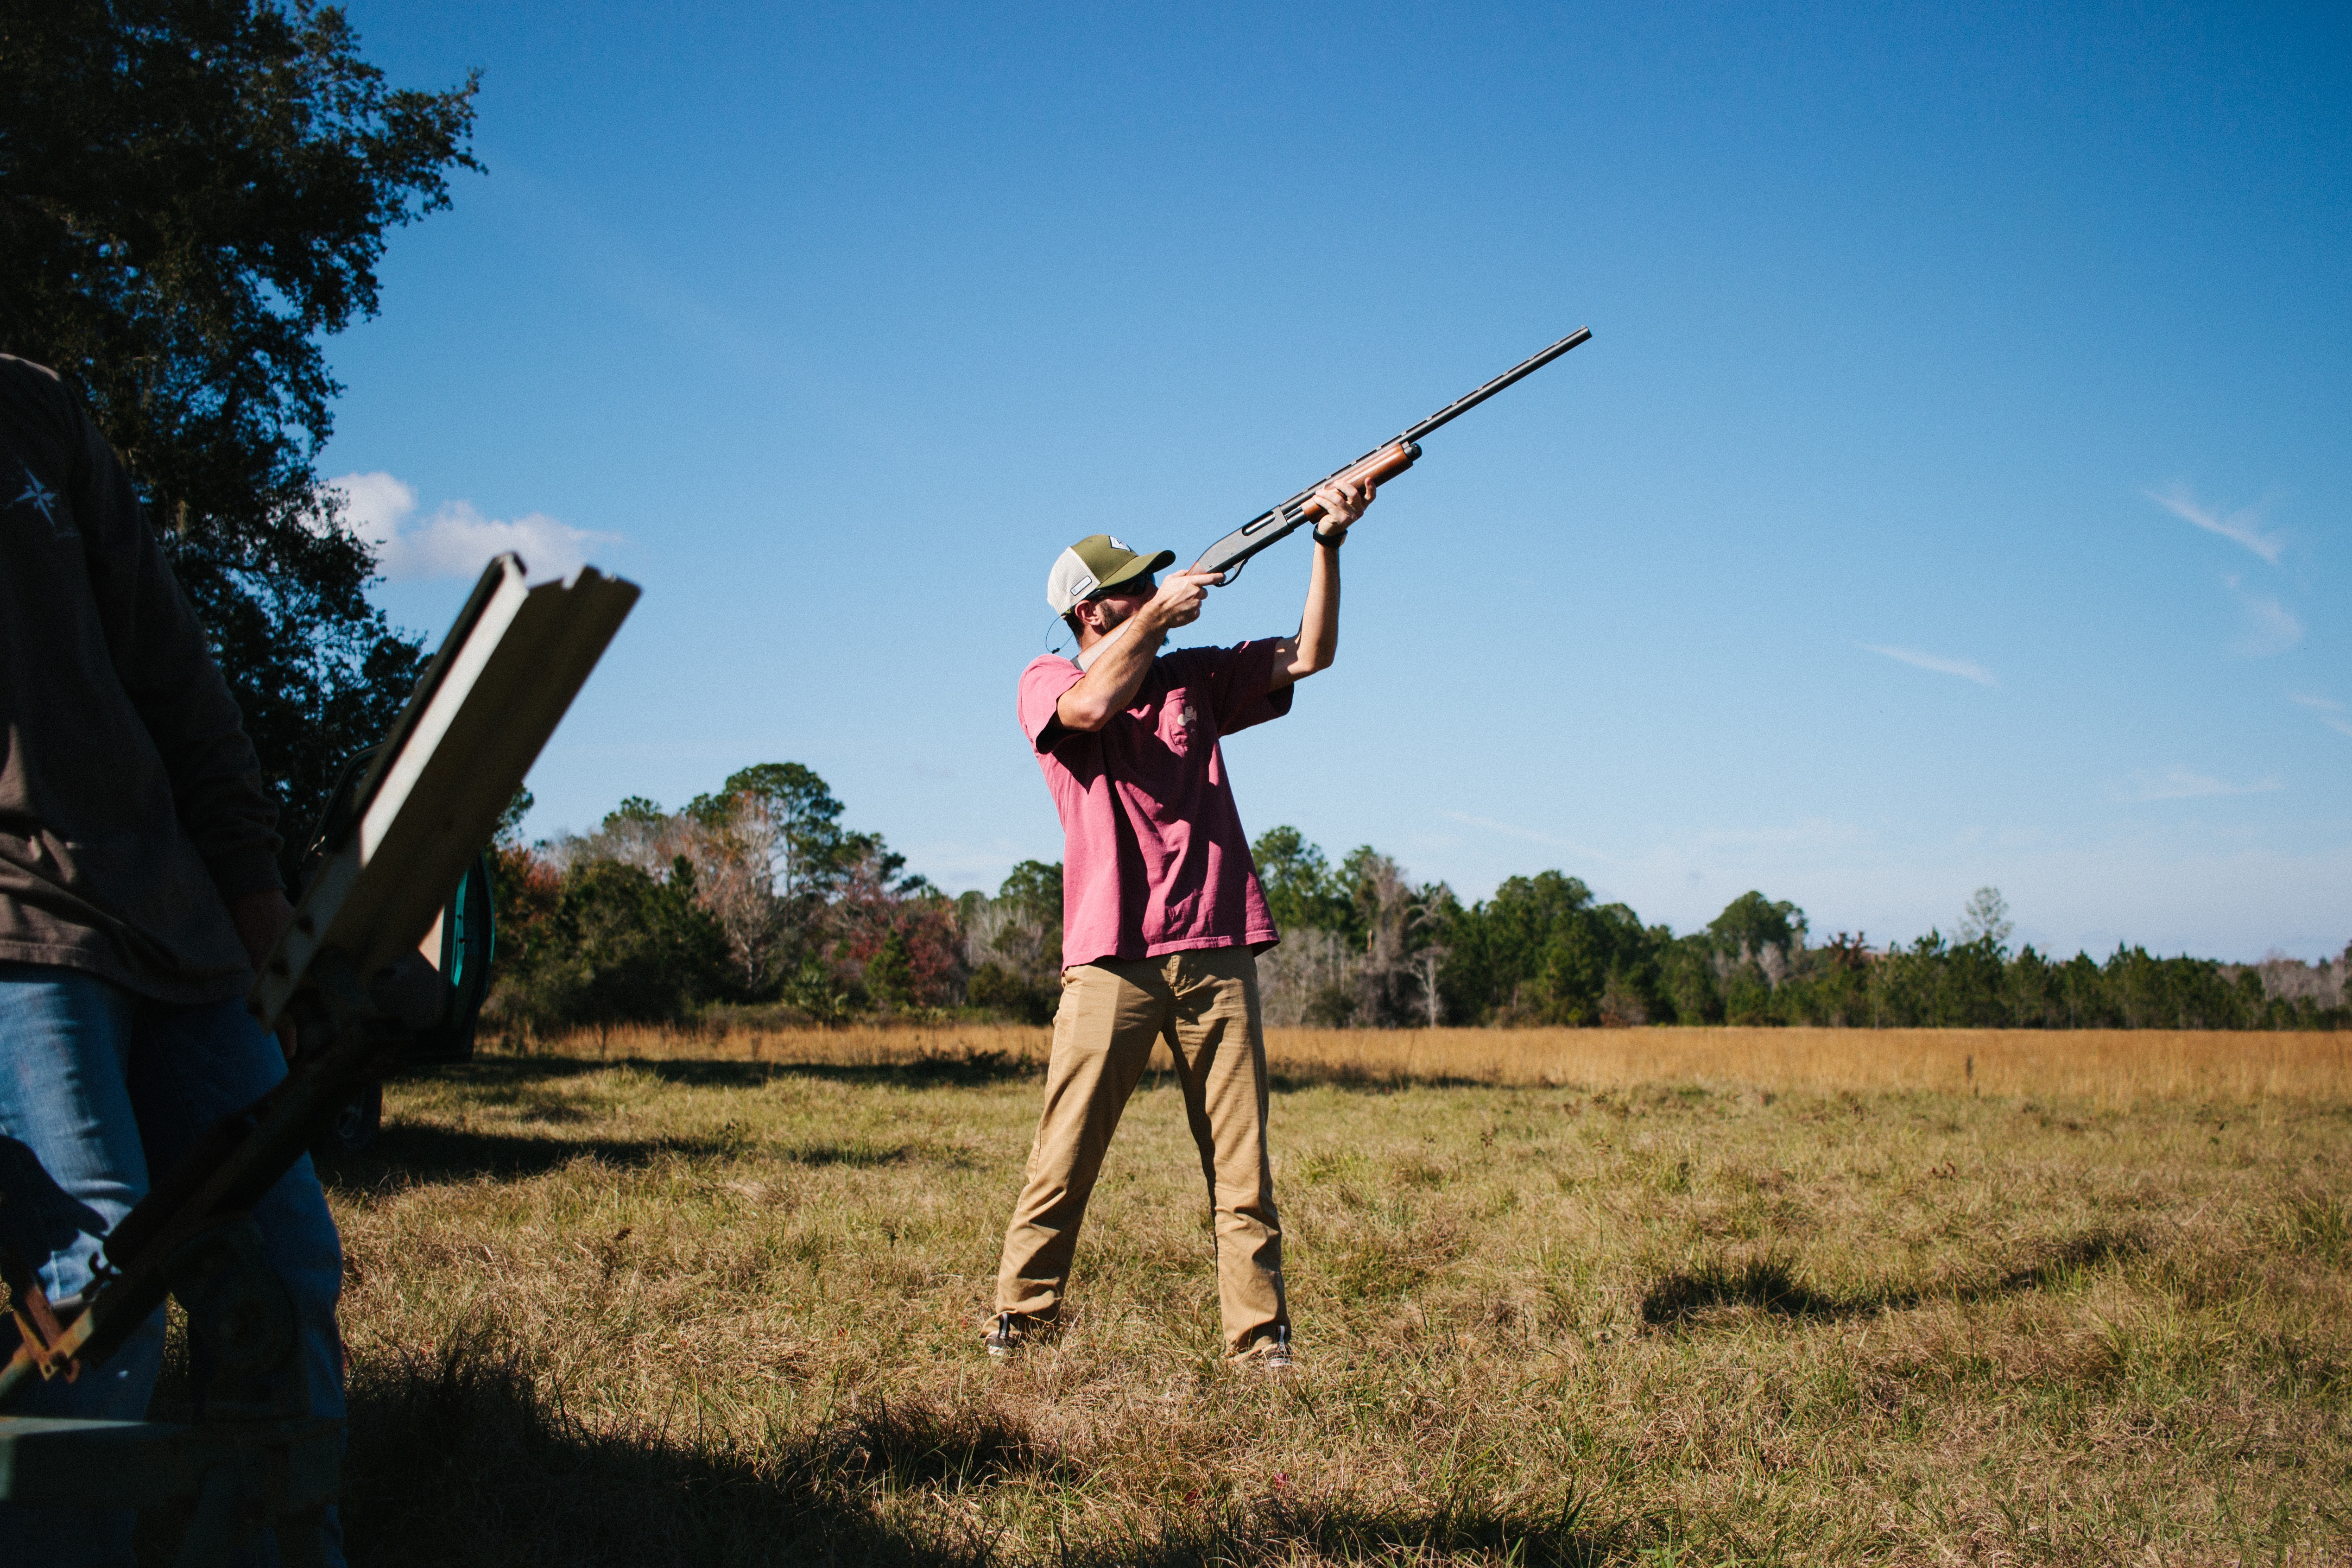 man shooting on clay pigeons